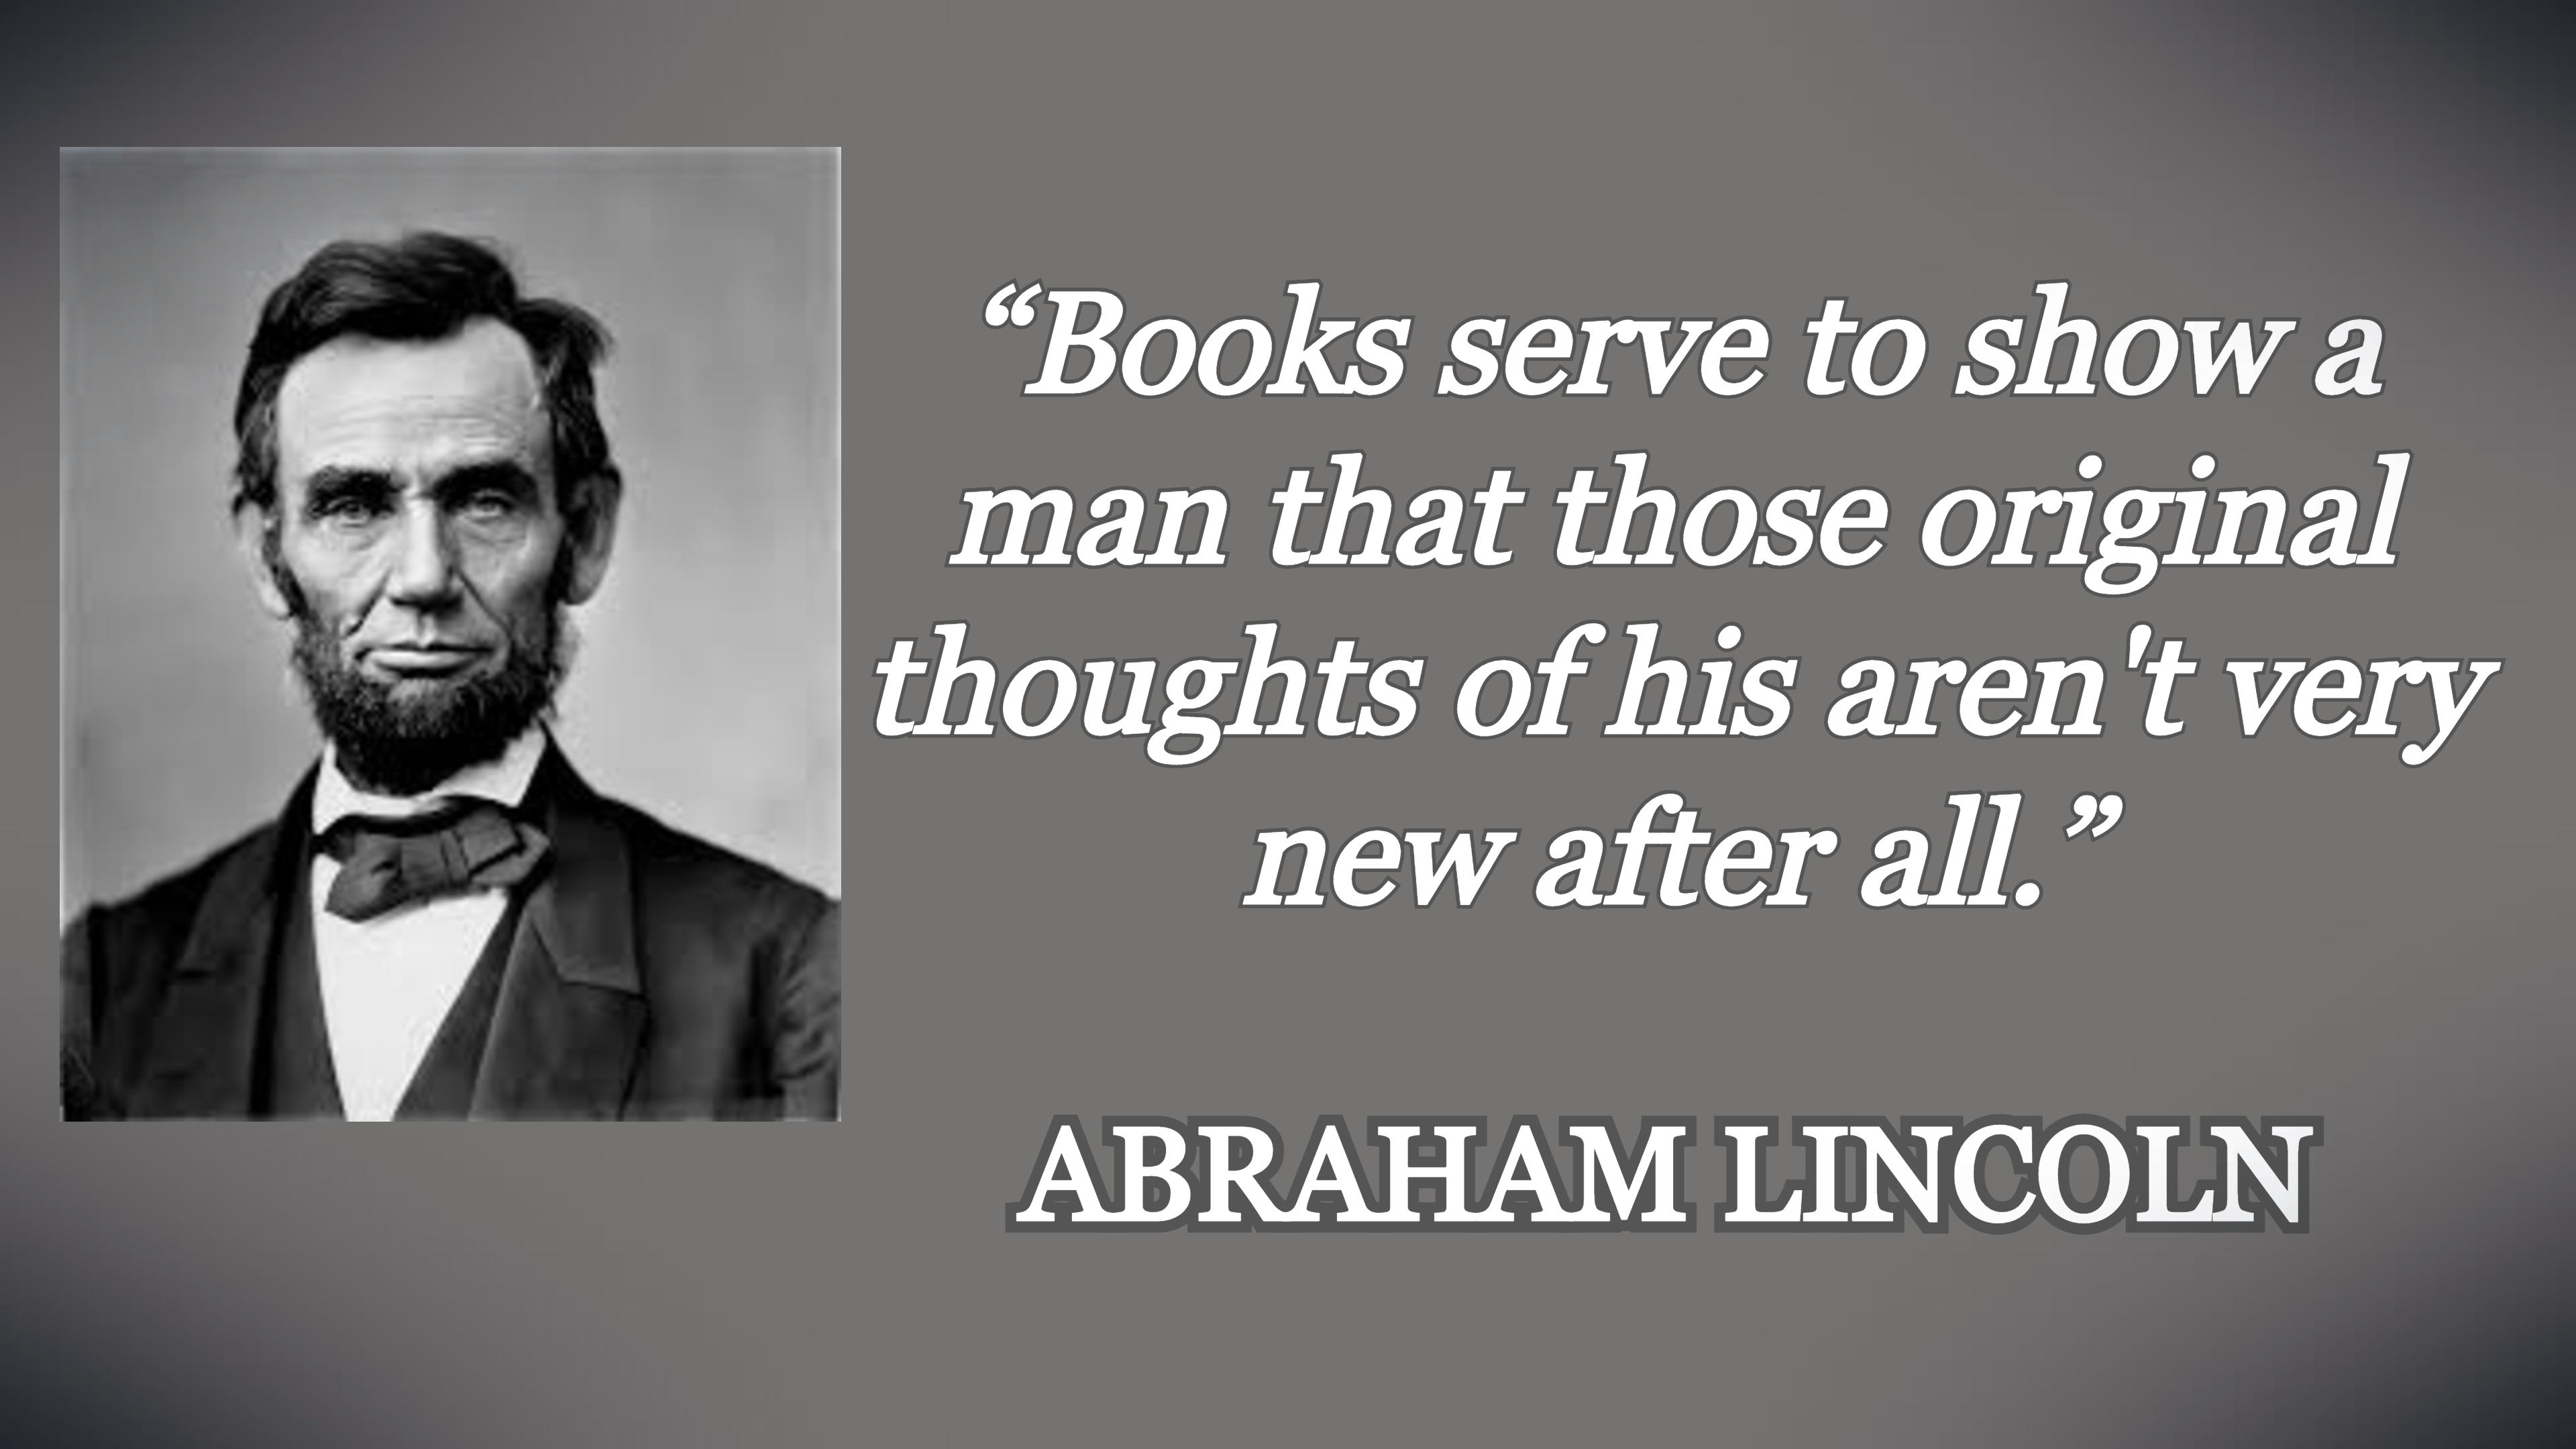 """Books serve to show a man that those original thoughts of his aren't very new after all."" ― Abraham Lincoln [3840×2160]"